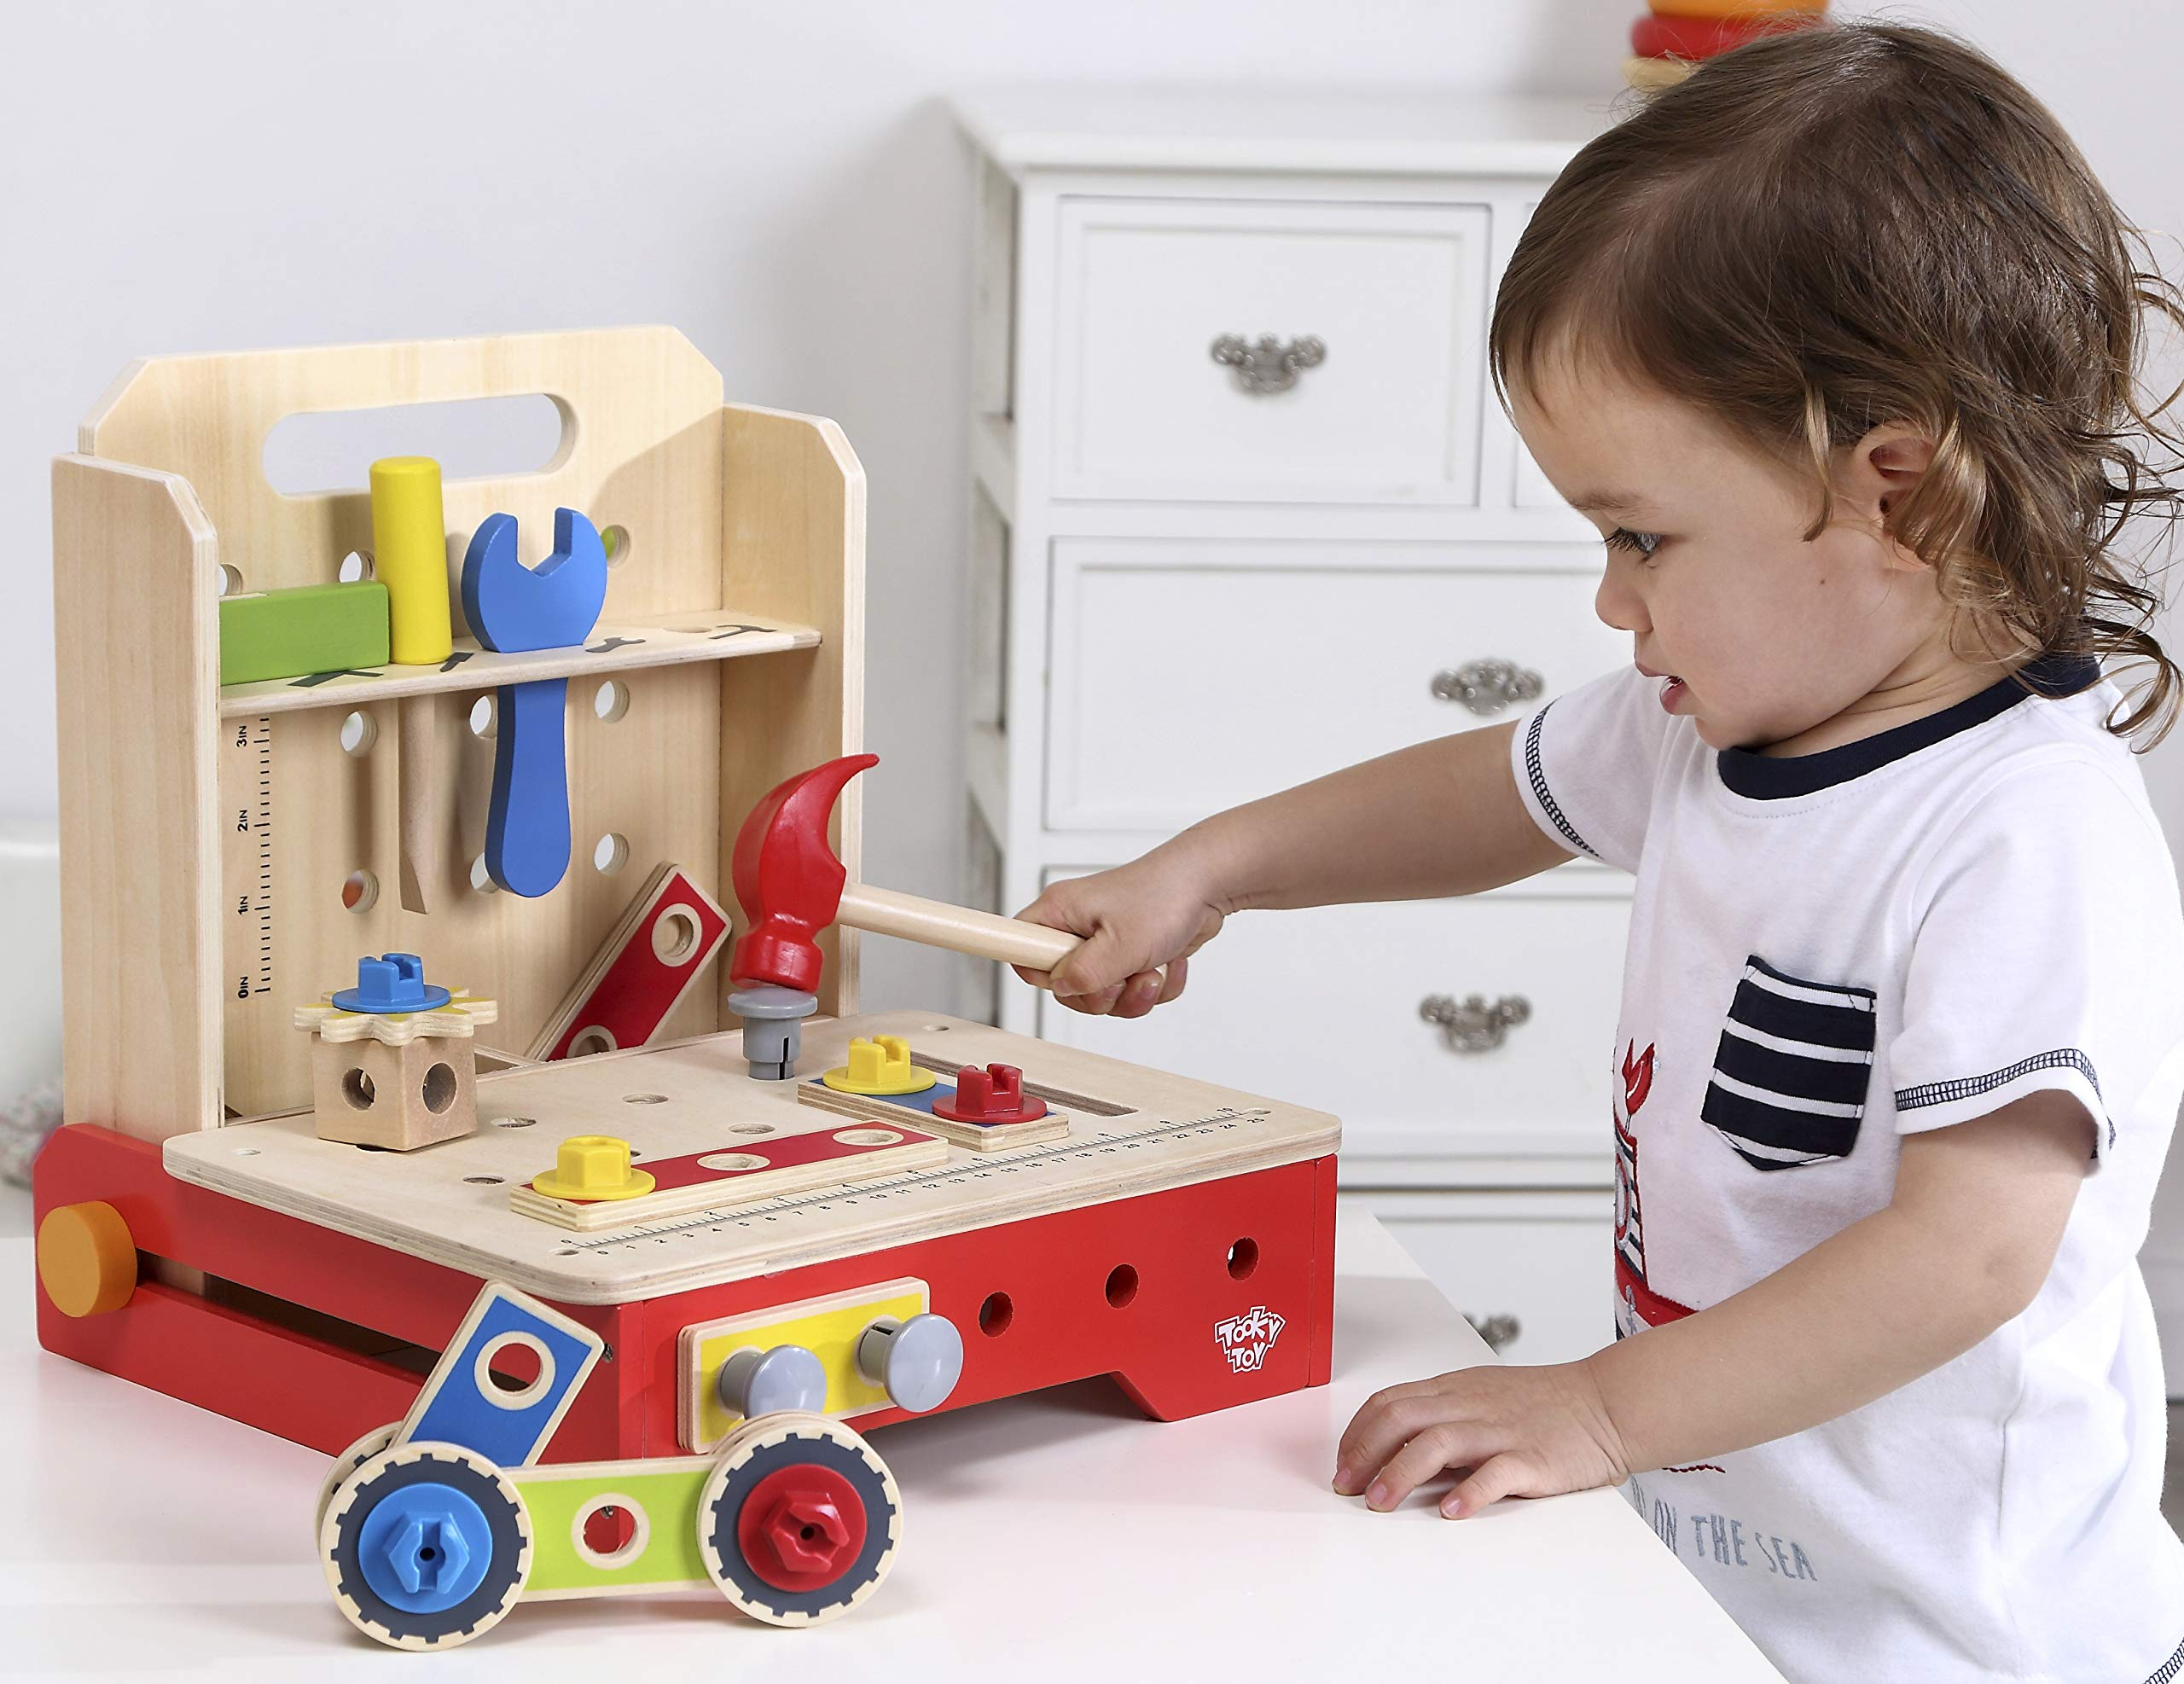 charaHOME Kids Wooden Pretend Play Toy Kids Foldable Workbench Portable Toolbox Construction Toy Role Play Set 36 Piece